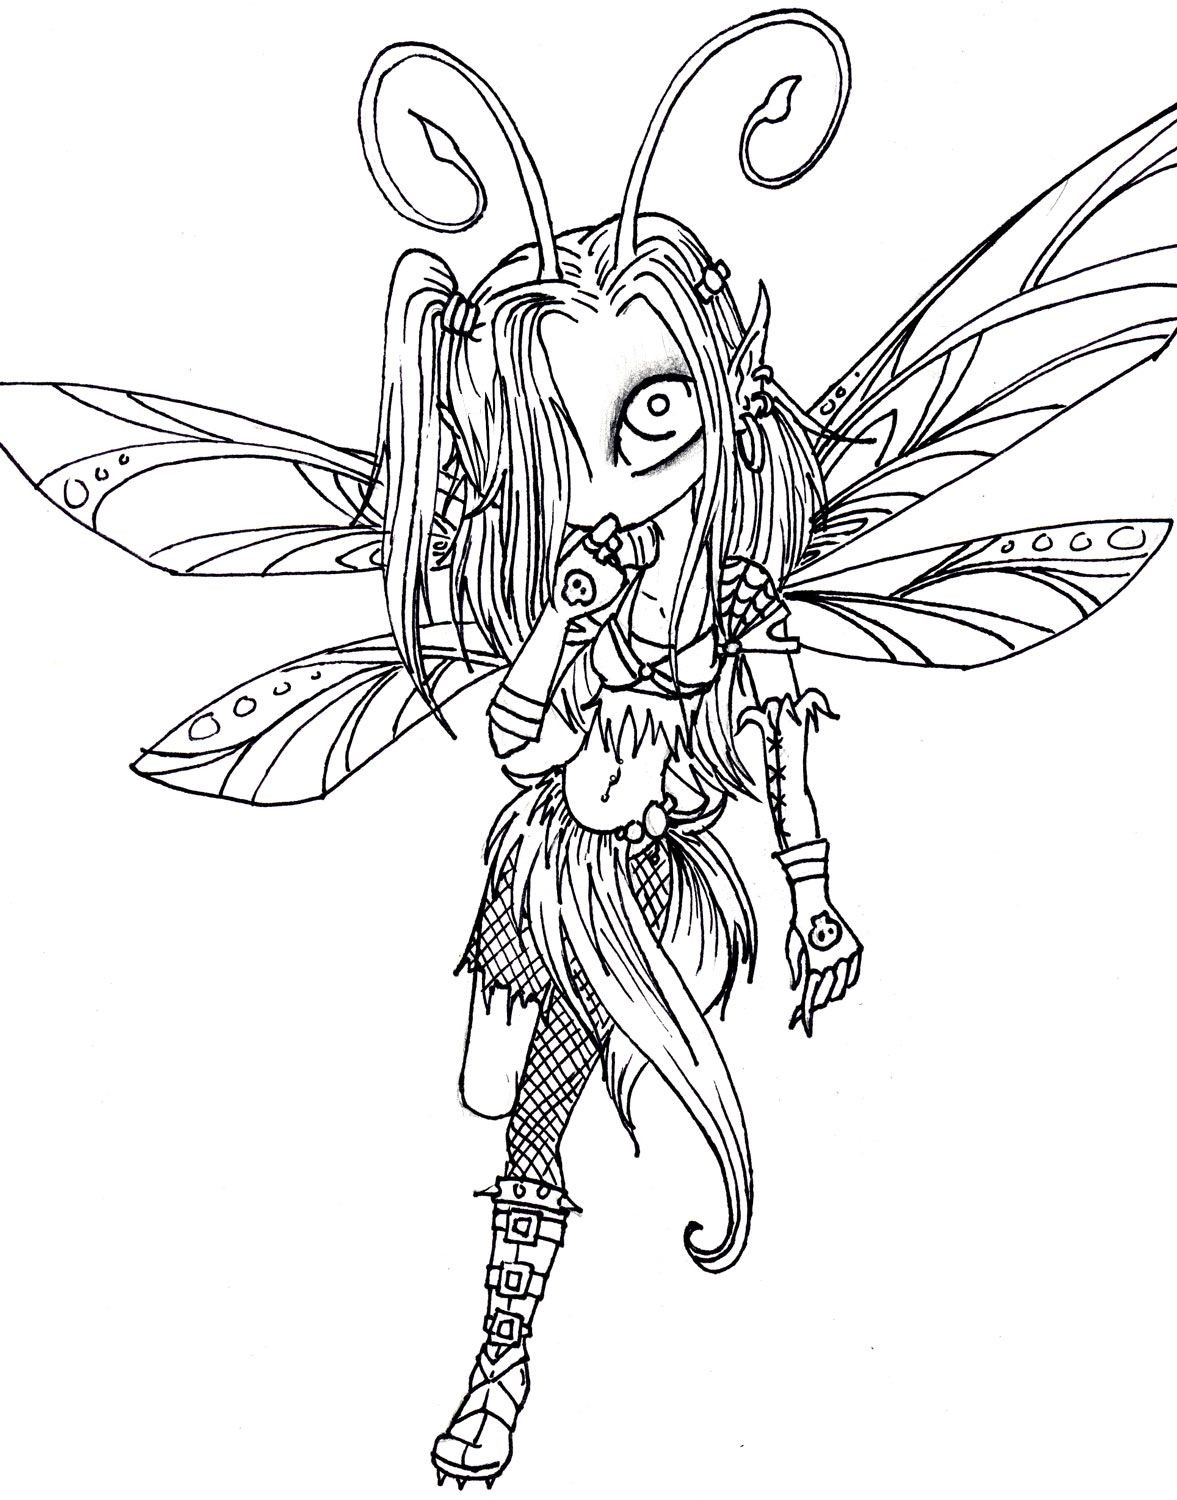 Best ideas about Free Printable Coloring Pages For Adults Dark Fairies . Save or Pin Free Printable Coloring Pages for Adults Dark Fairies Now.